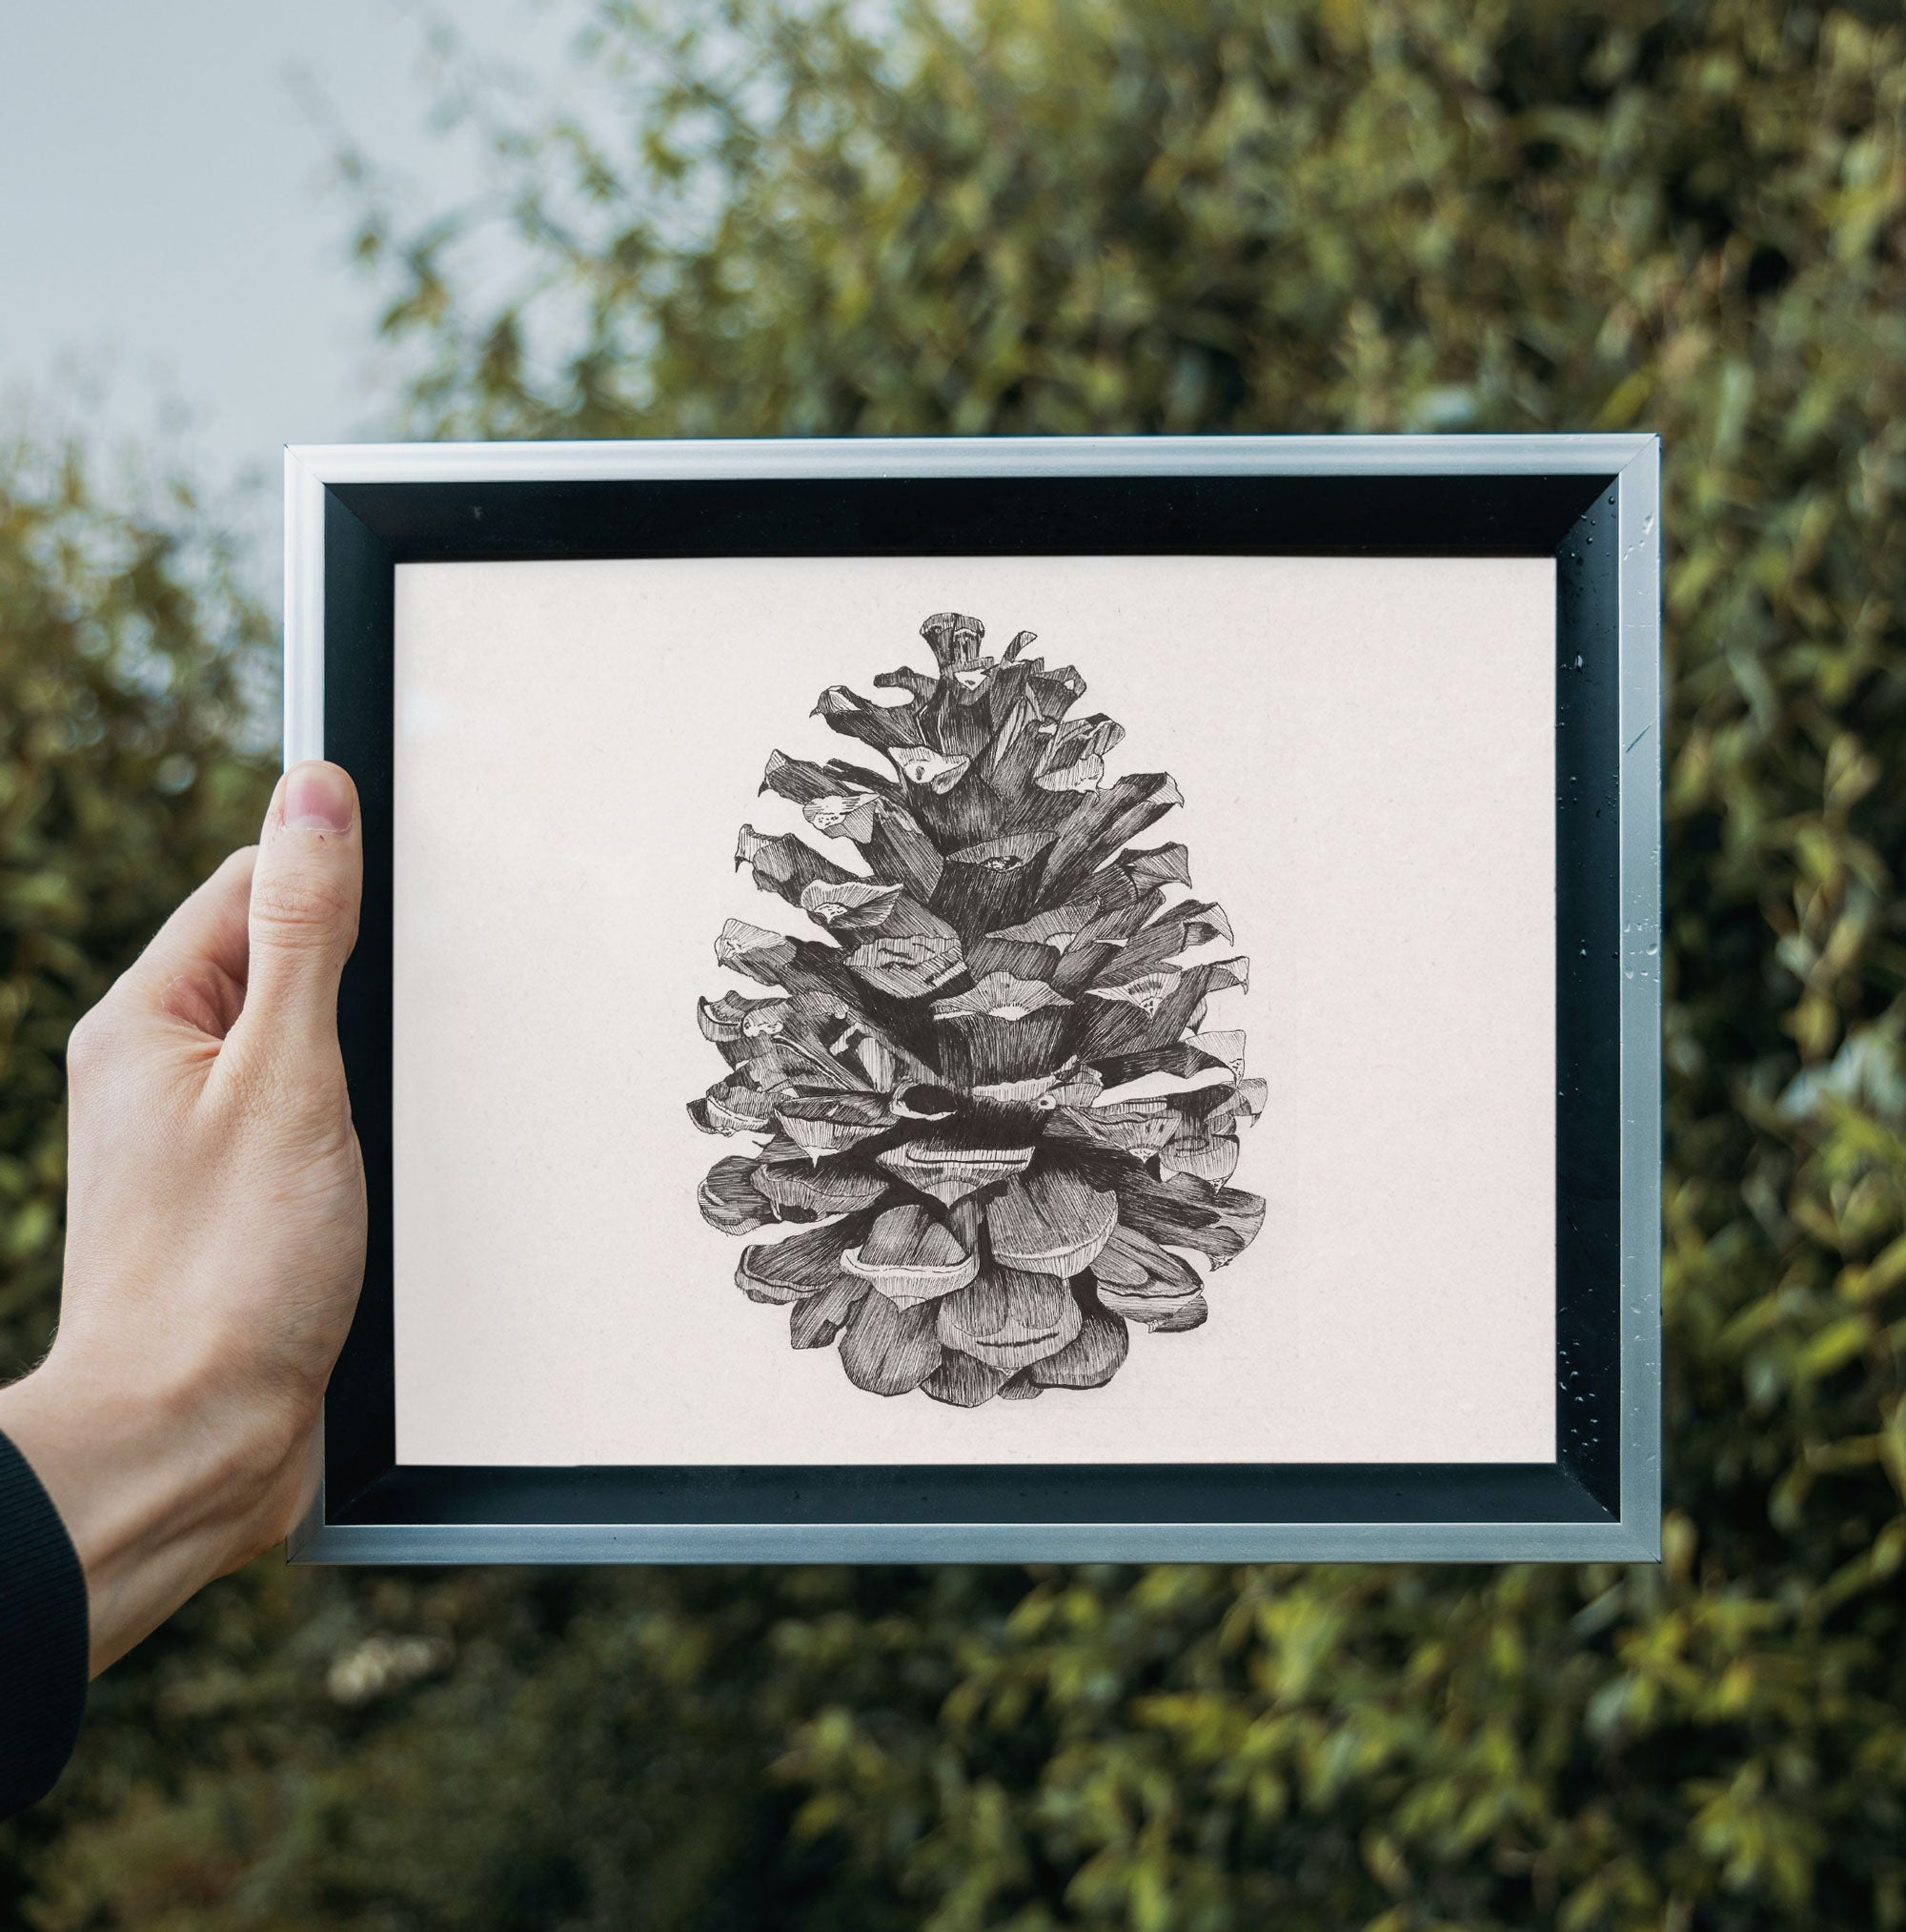 Pine Cone • Hand Drawn Print - Stokedthebrand. Lifestyle products for outdoor adventures. Made in South Africa